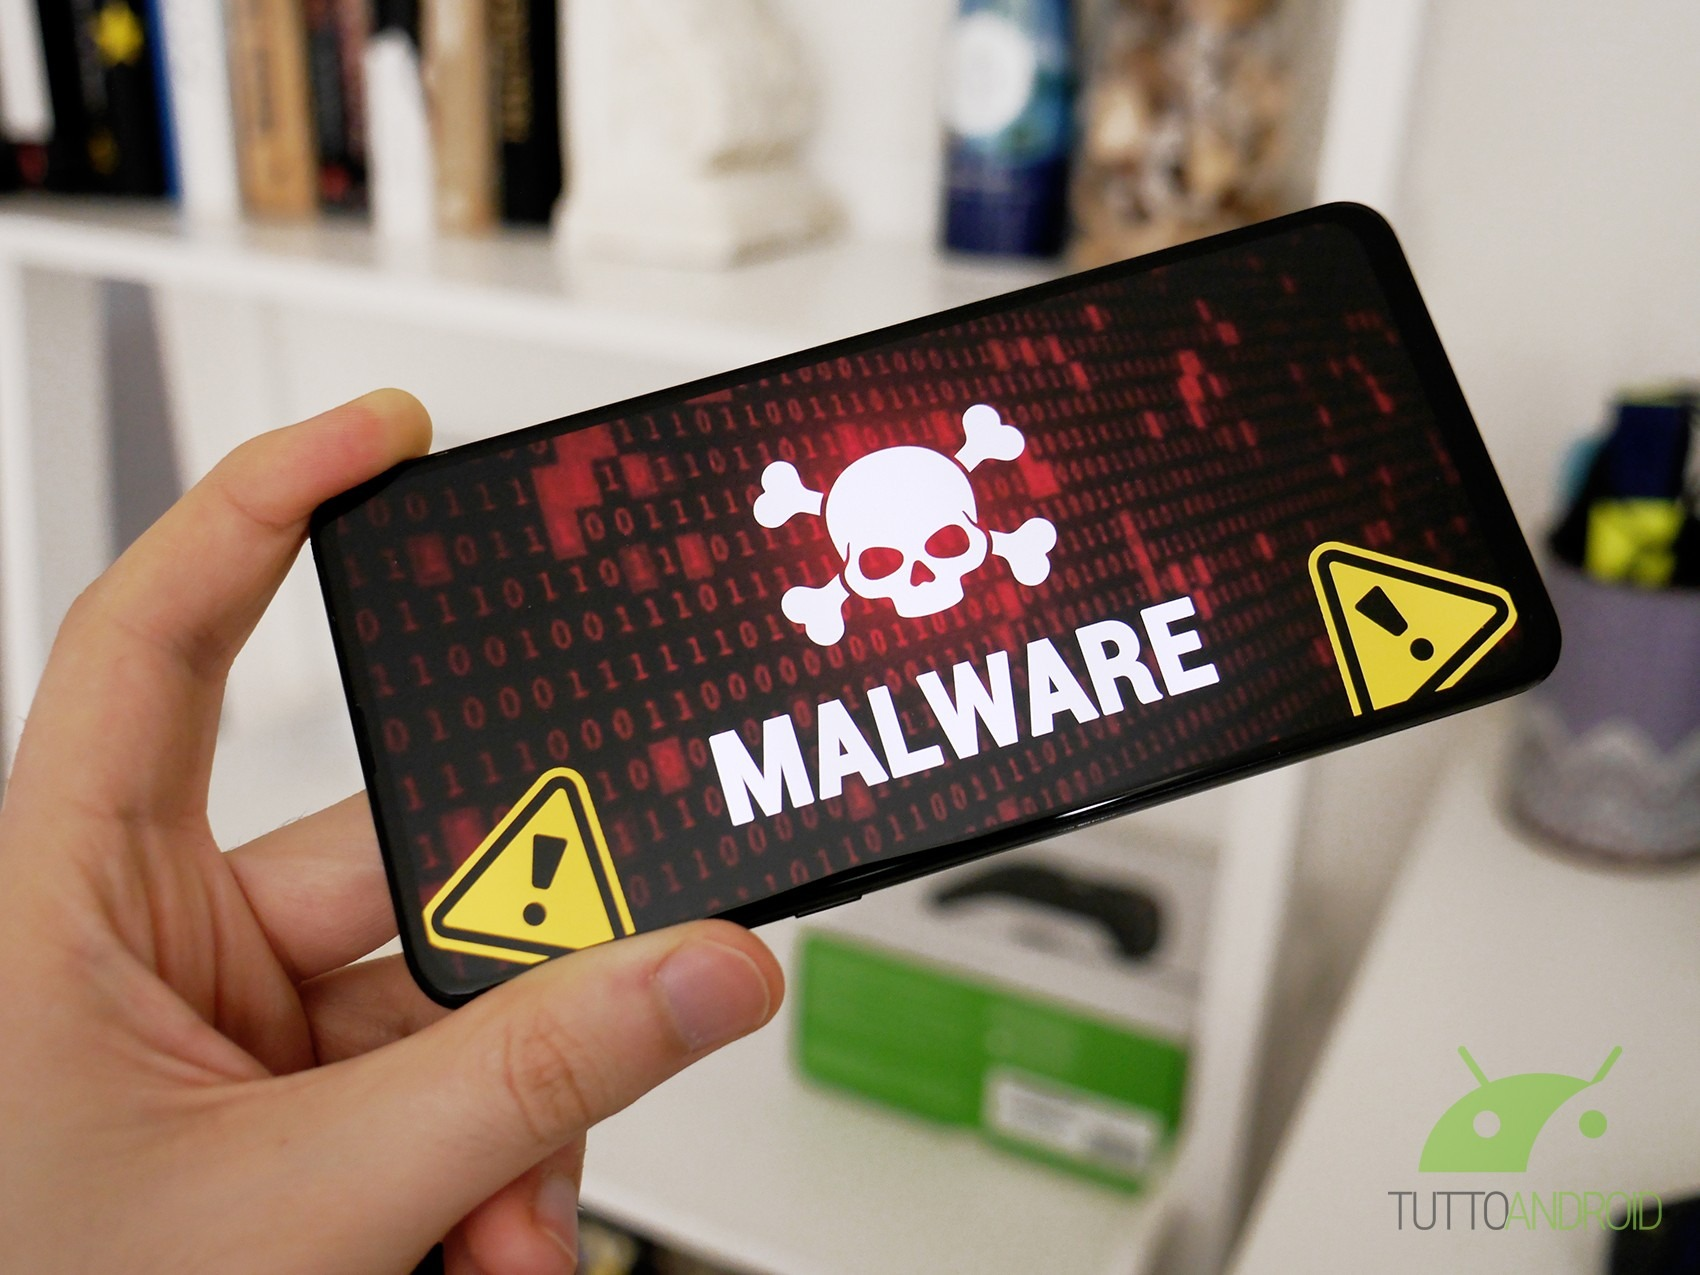 Questo bug di Android permette a malware di rubare password